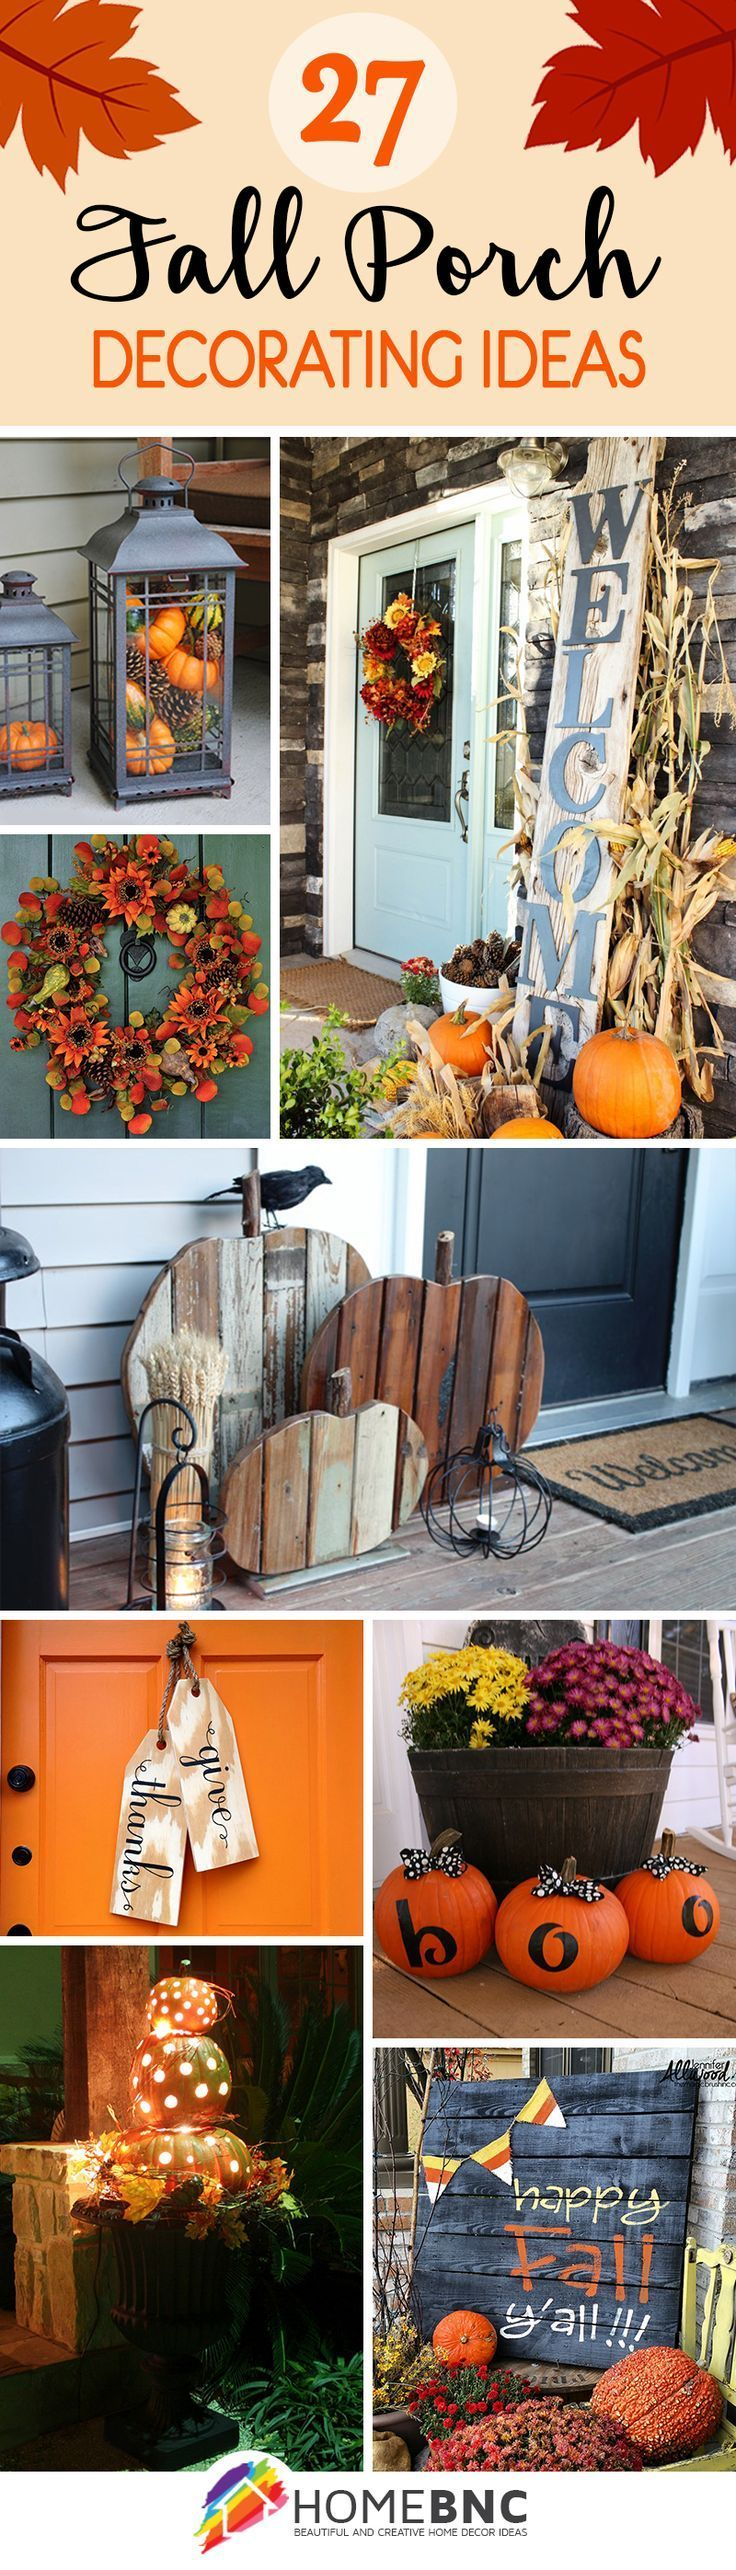 Fall Porch Decorations